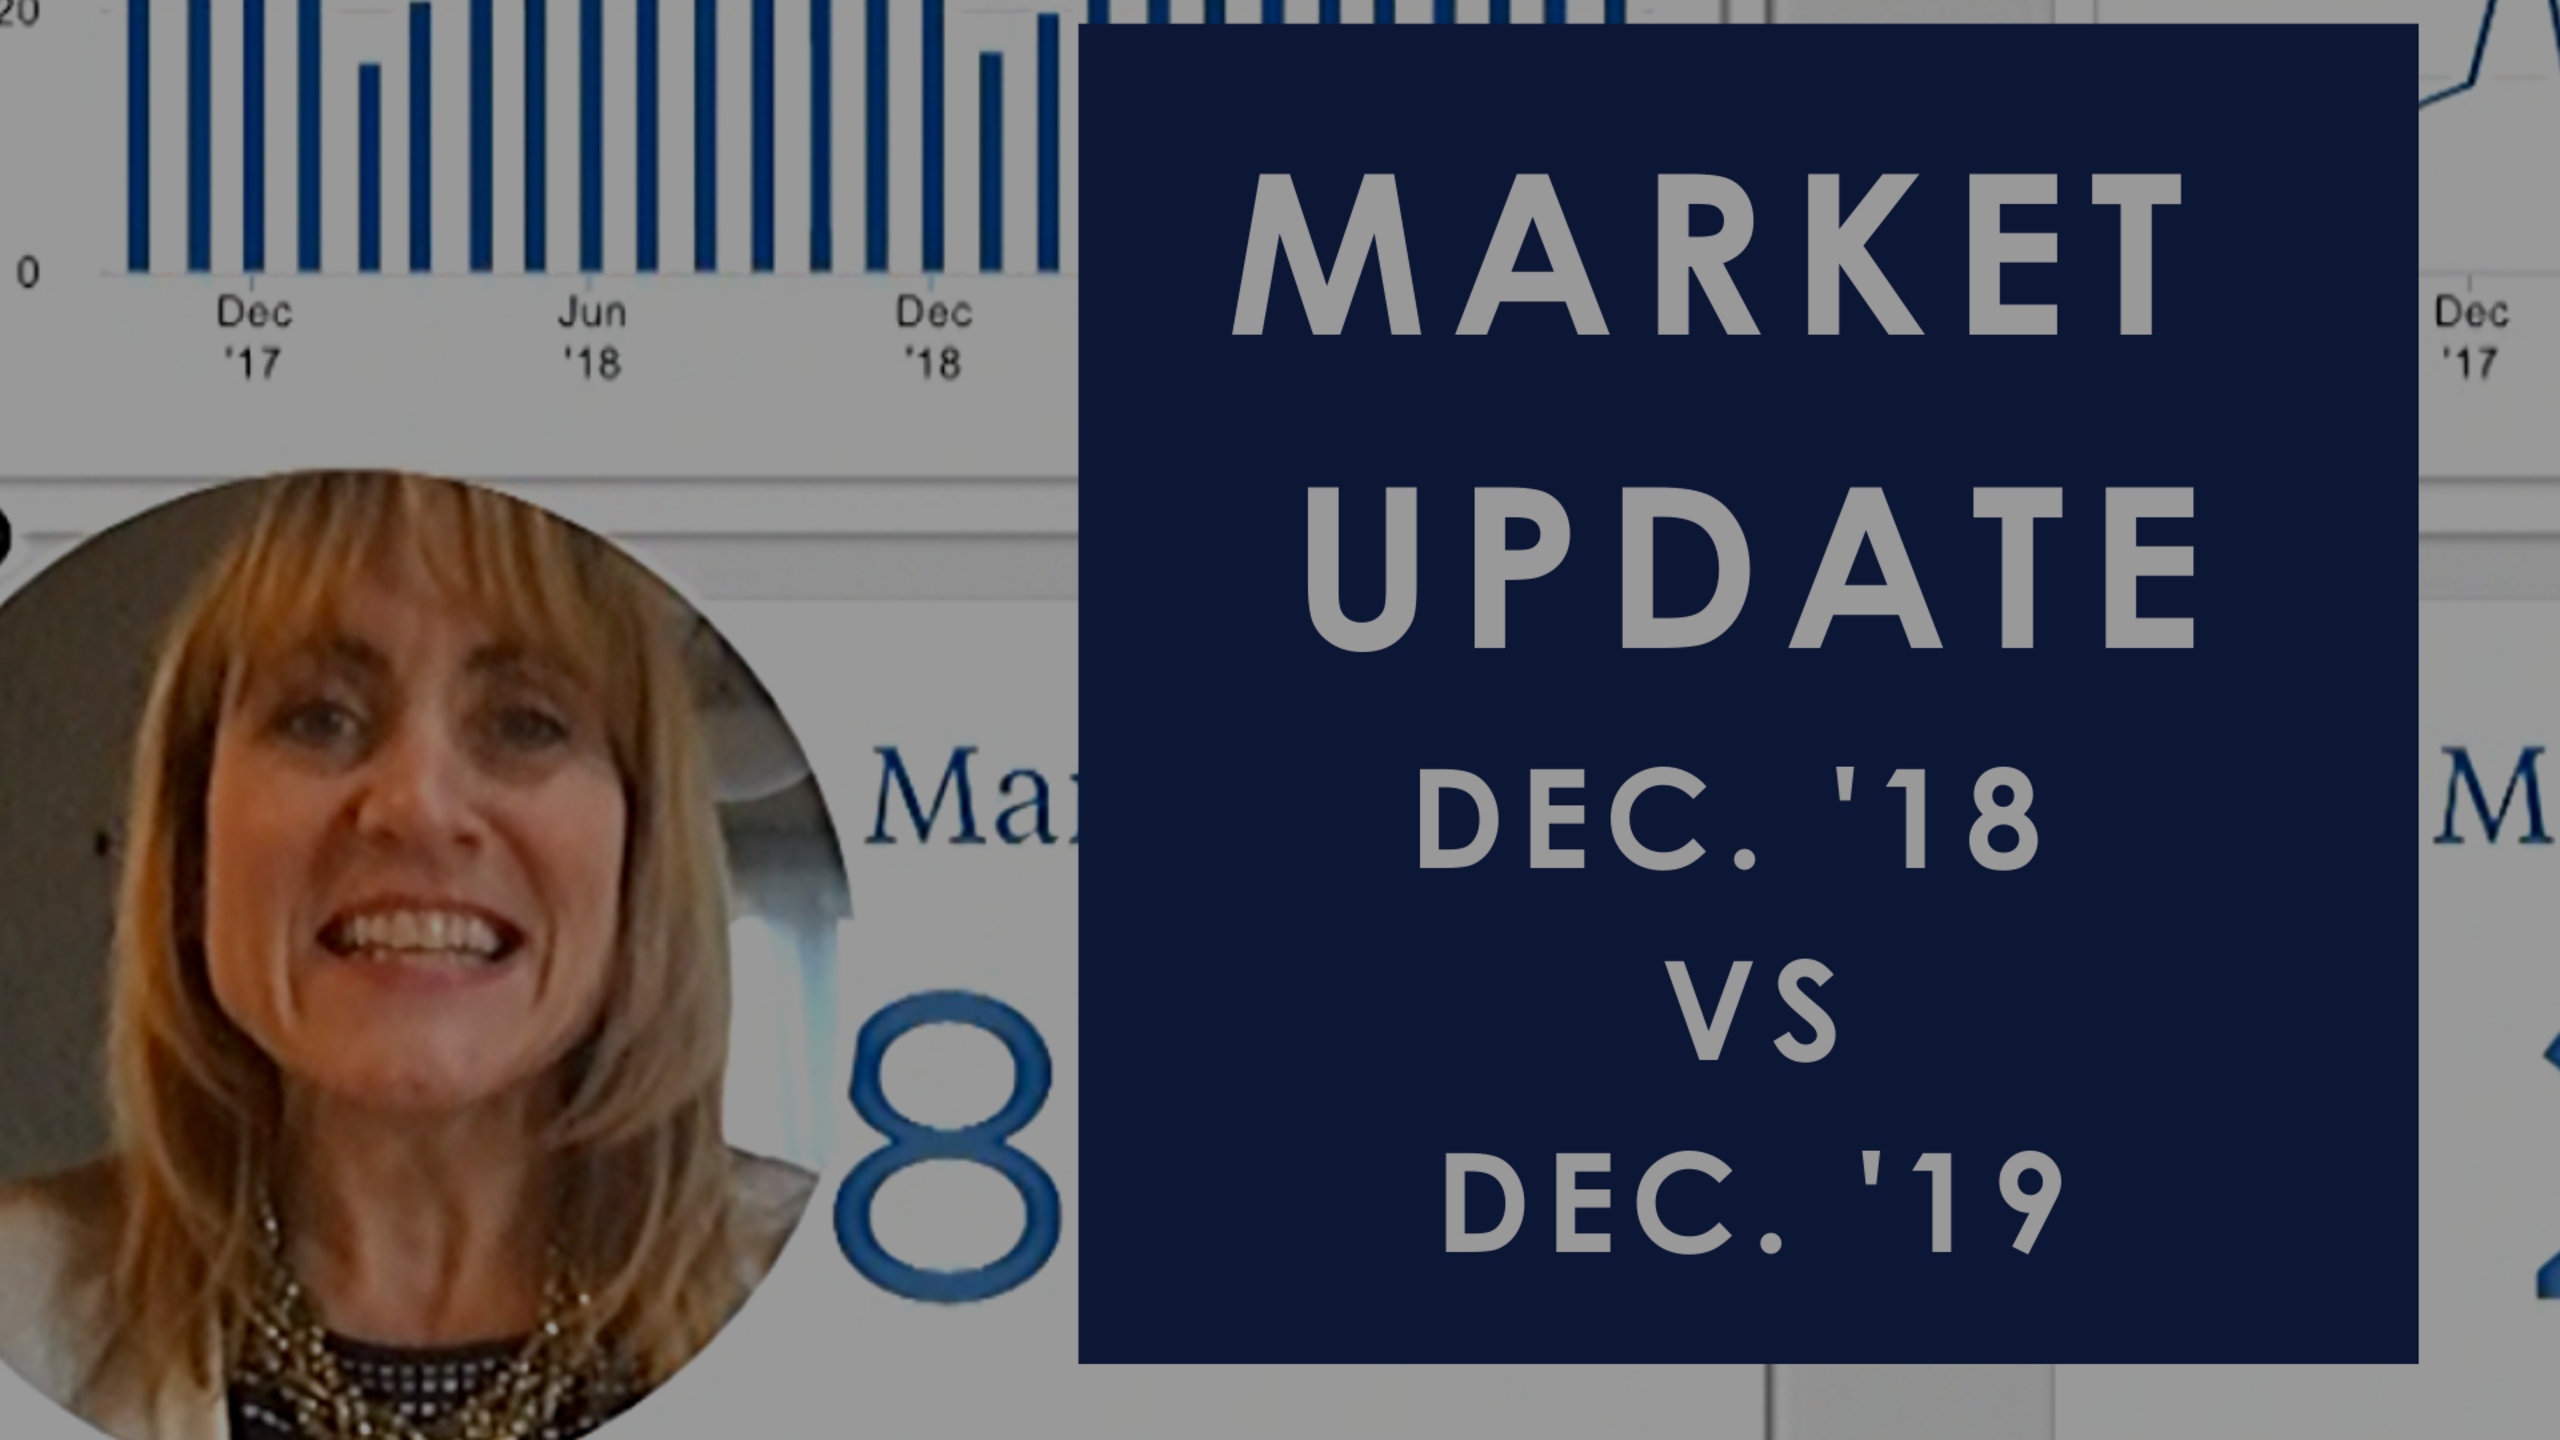 Episode 79: Market Update – December 2018 vs. December 2019